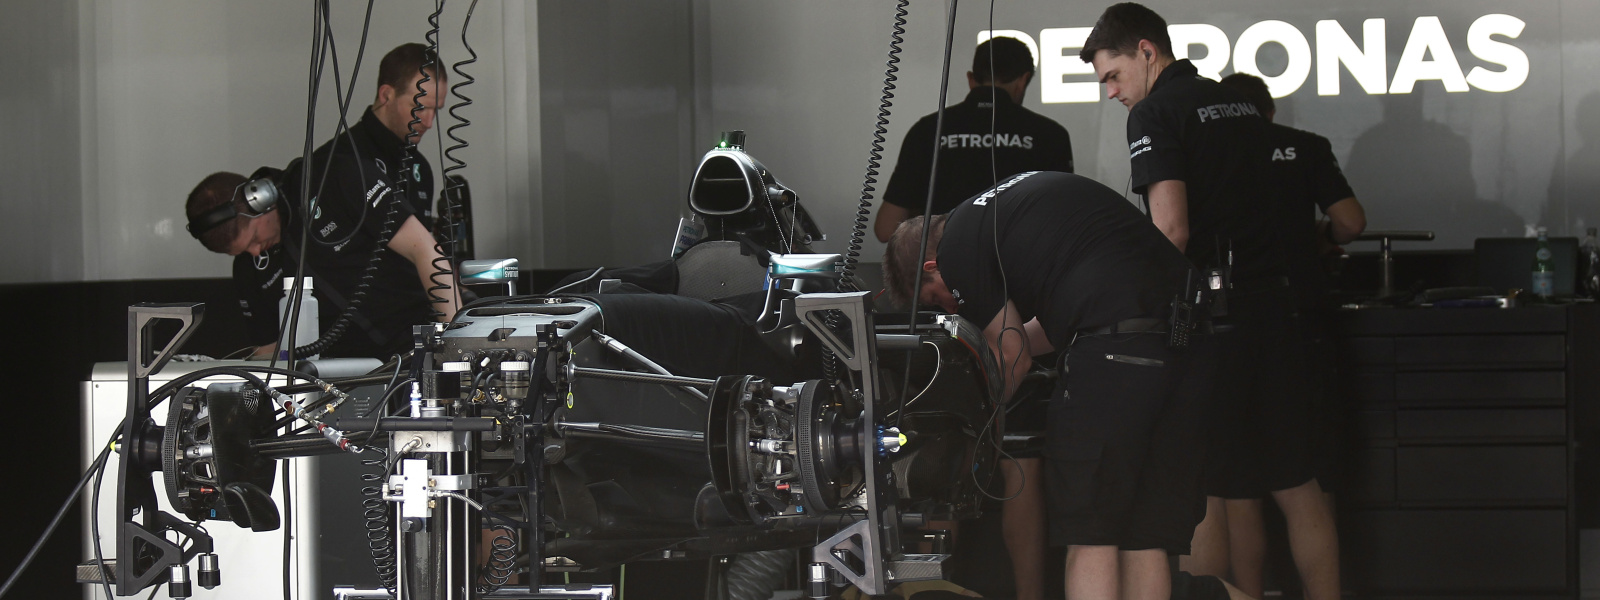 Motorsports: FIA Formula One World Championship 2015, Grand Prix of Malaysia,  garage of Mercedes AMG Petronas Formula One Team *** Local Caption *** +++ www.hoch-zwei.net +++ copyright: HOCH ZWEI +++